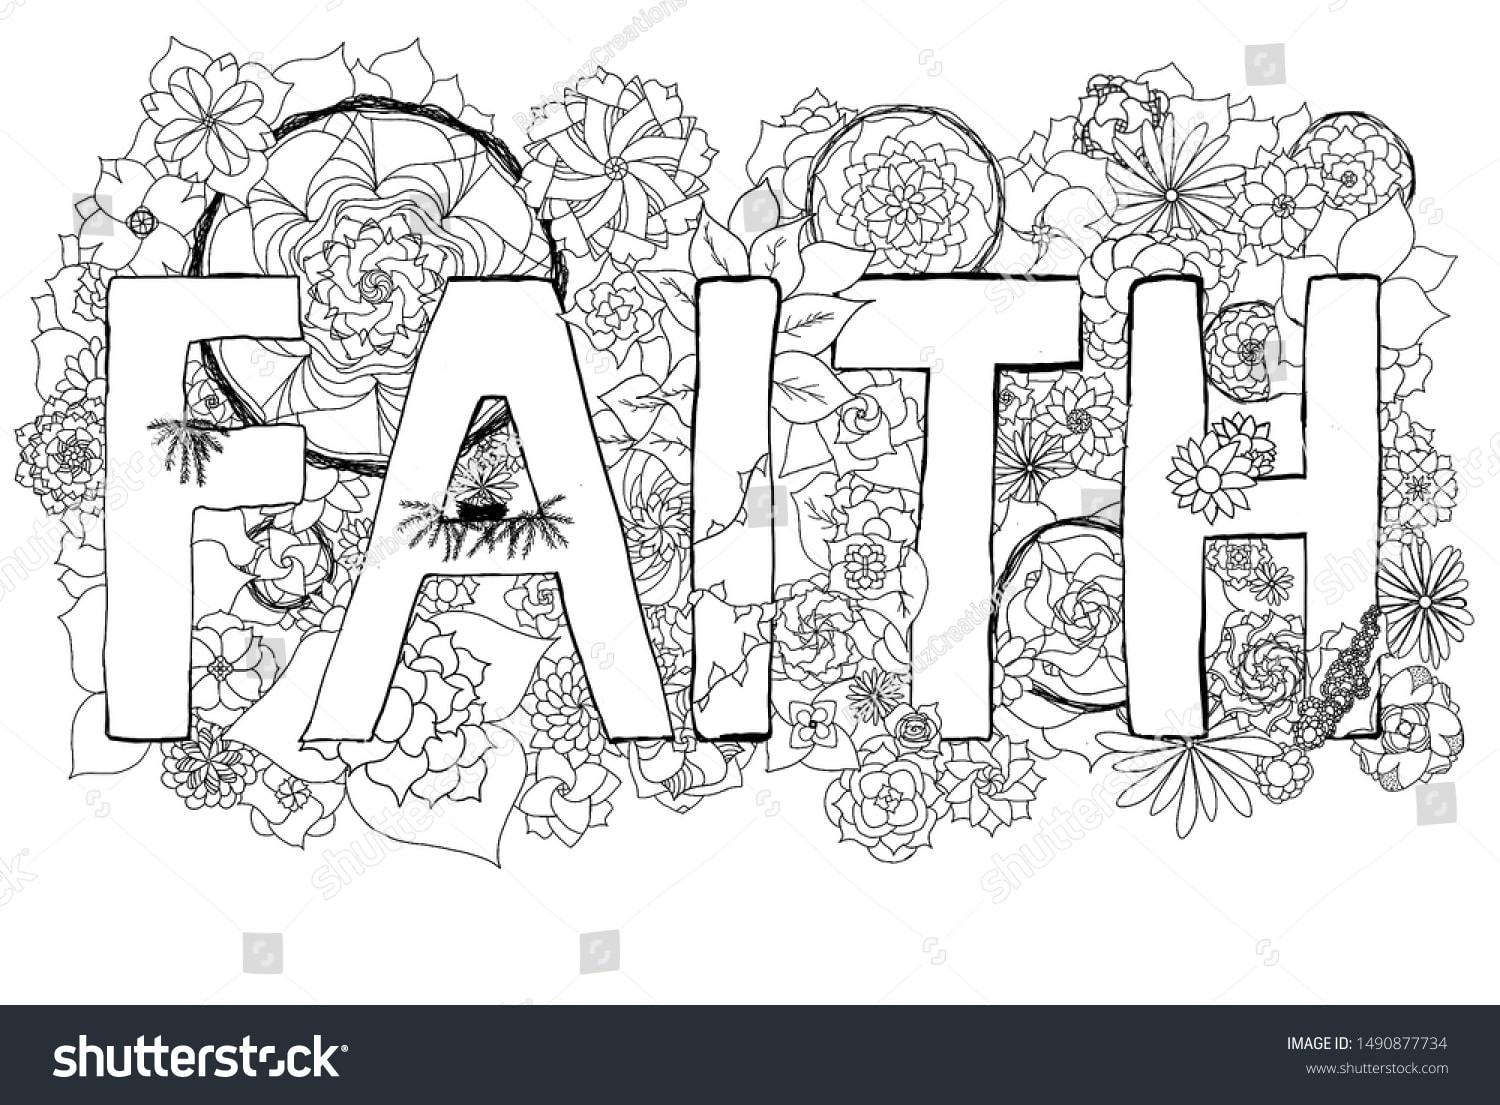 faith coloring for adults happier human scripture shutterstock crayola experience coloring pages Scripture Coloring Page